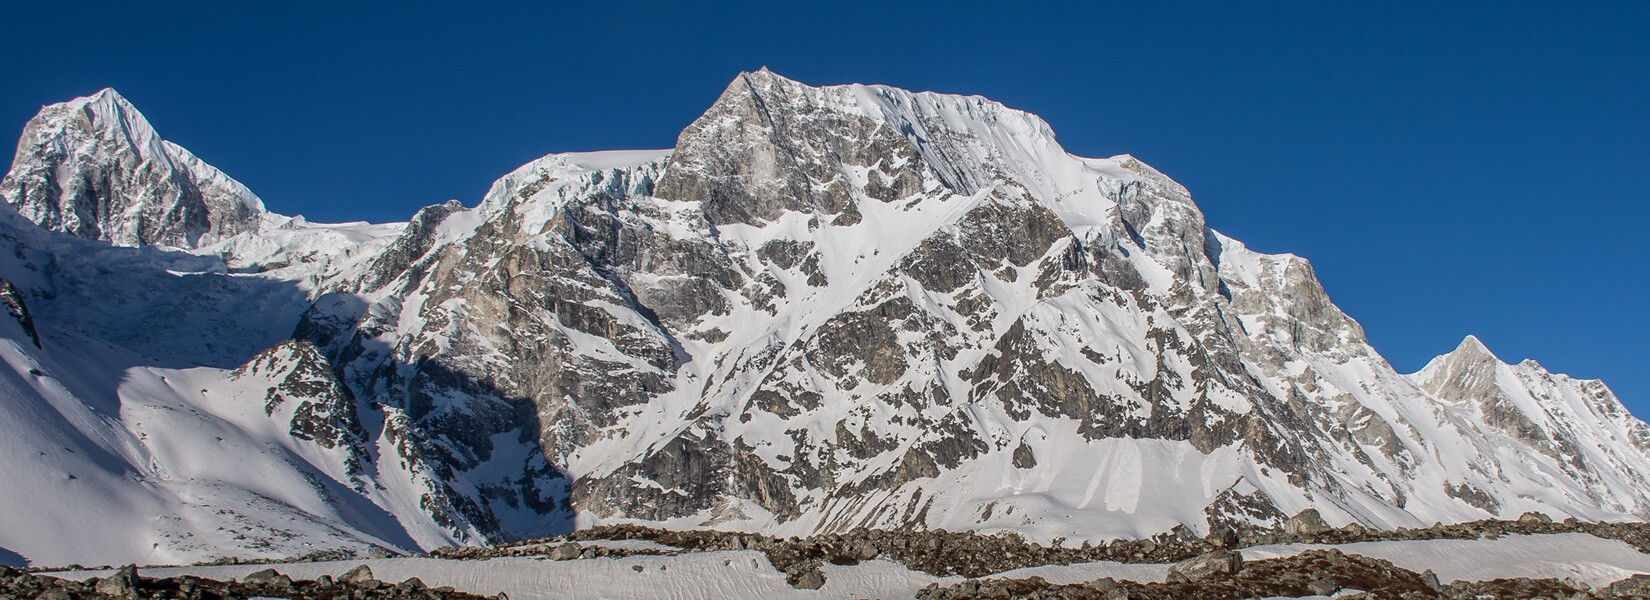 larke peak claimbing in nepal